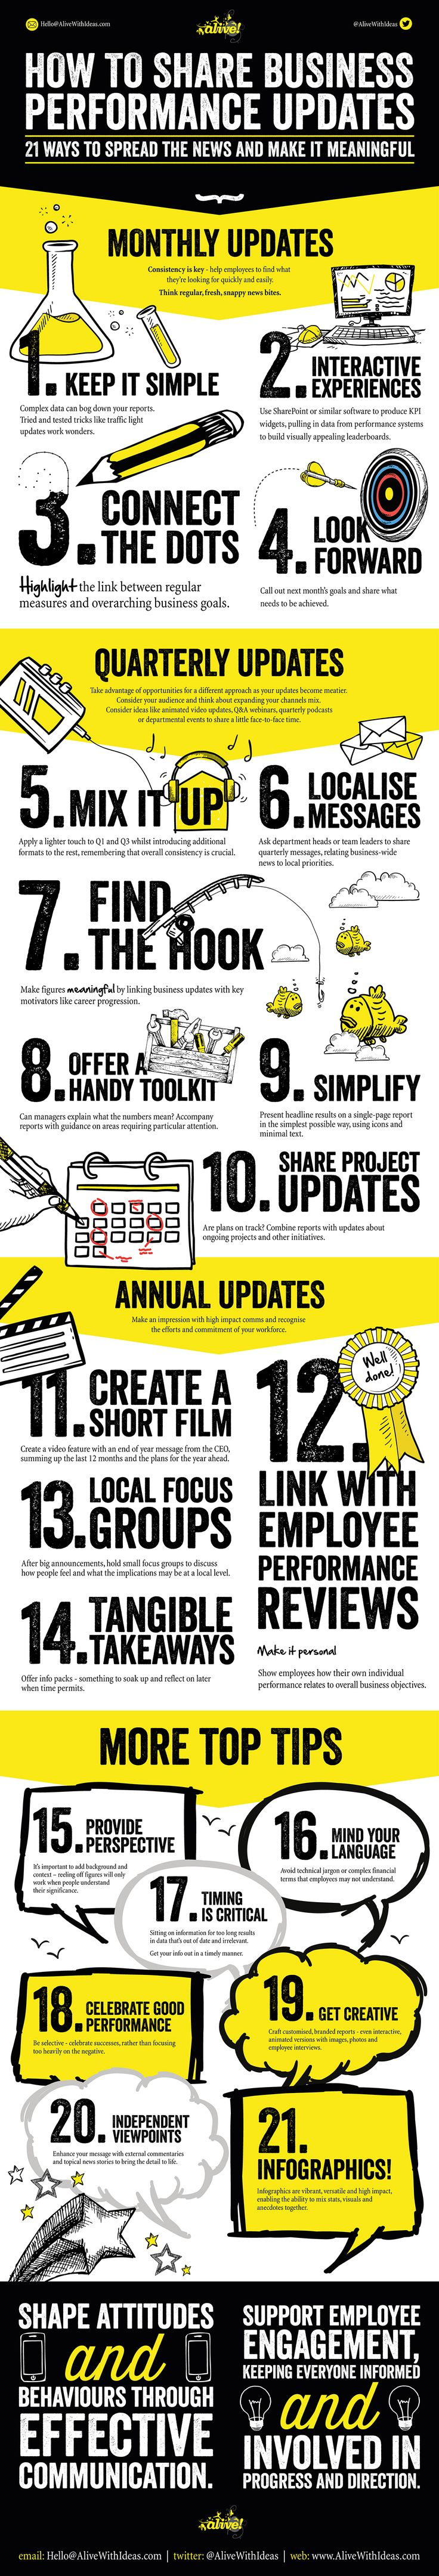 21 Ways to Share Business Performance Updates #infographic #InternalCommunication #Employees #Business